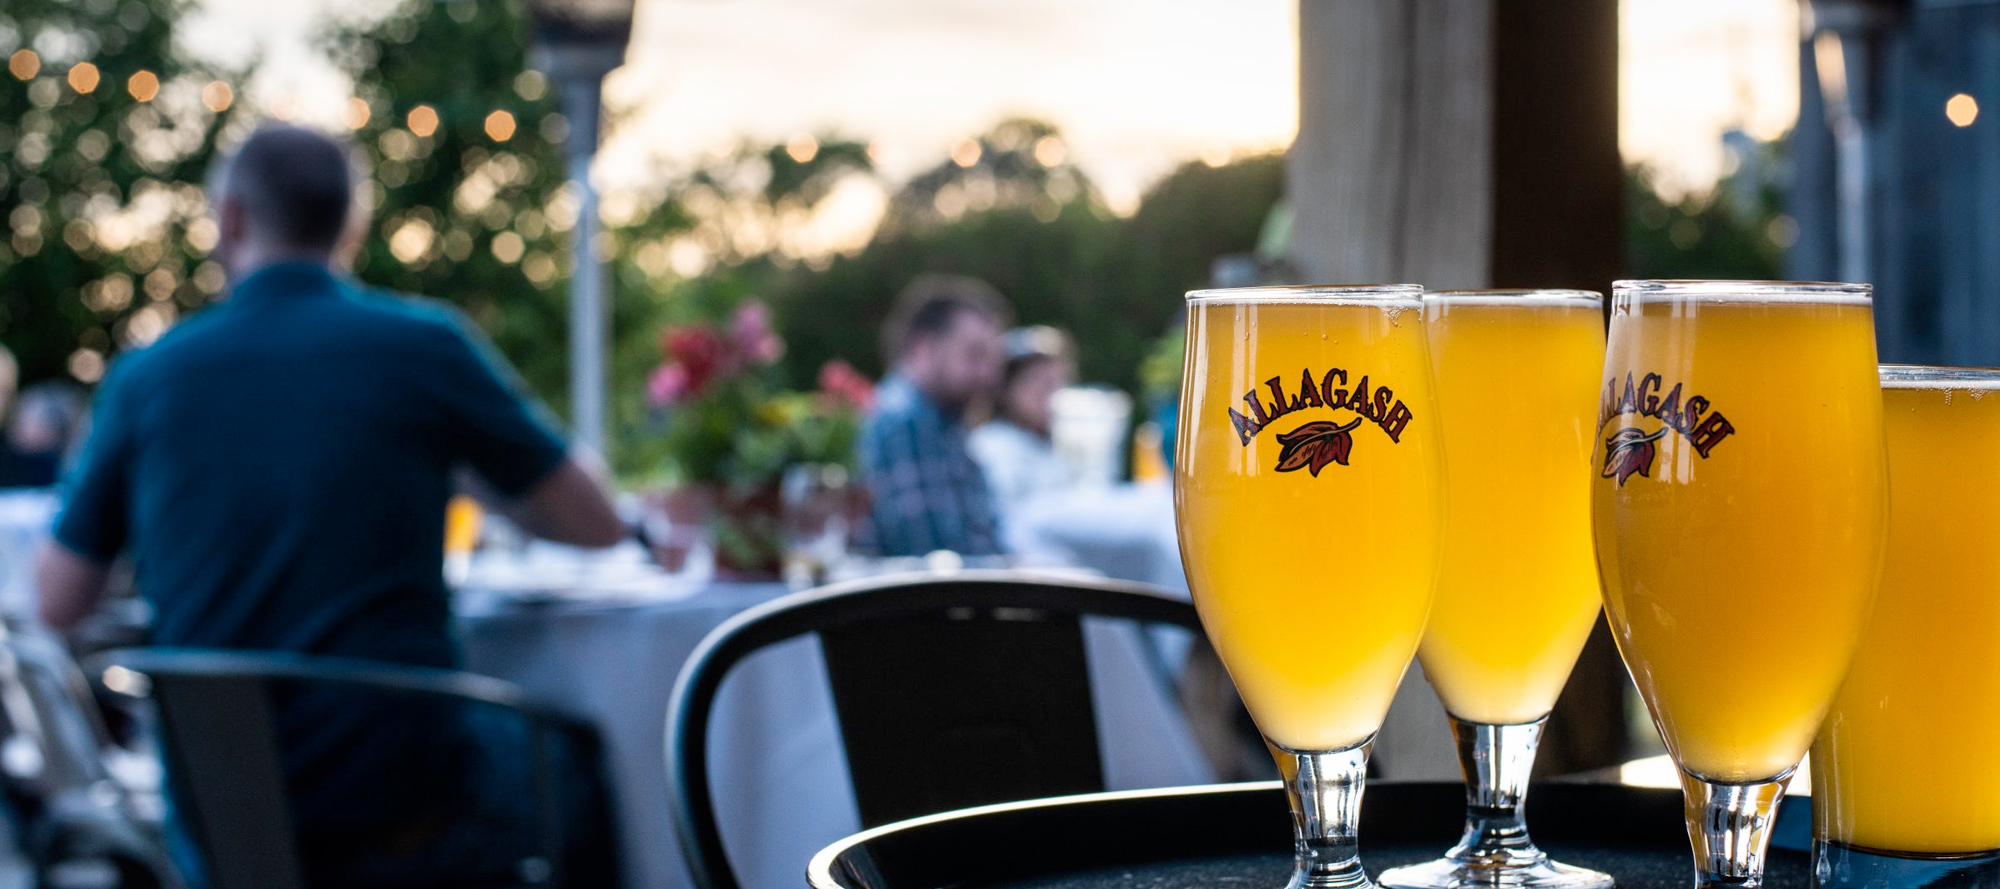 Allagash beer served at the uxlocale restuarant